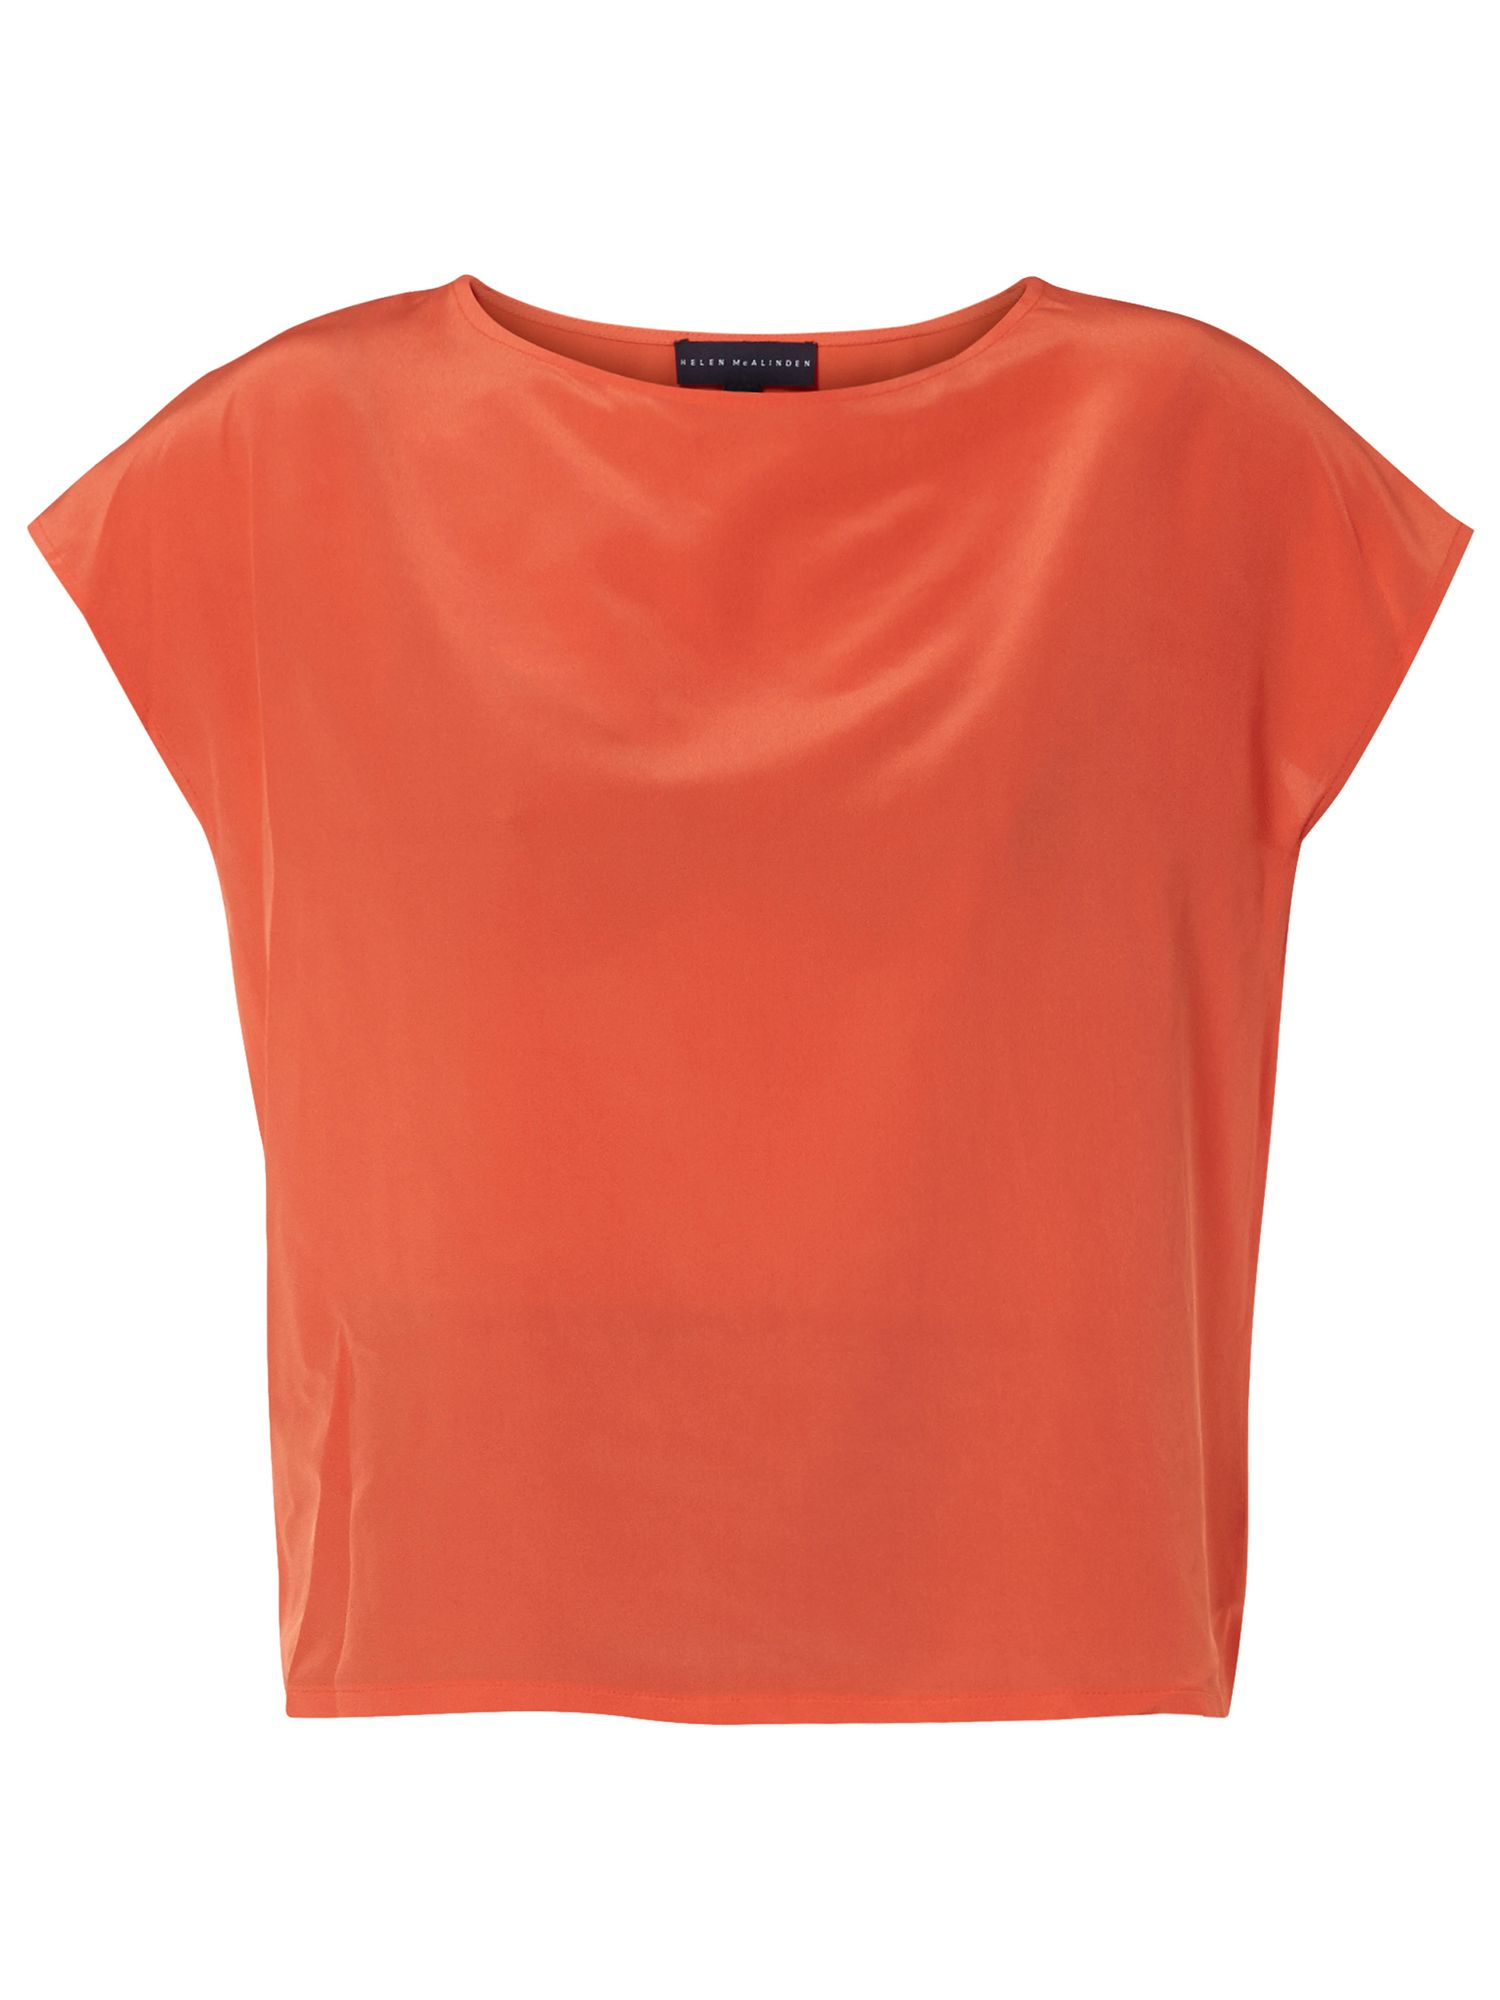 Helen McAlinden Lucy Top, Orange